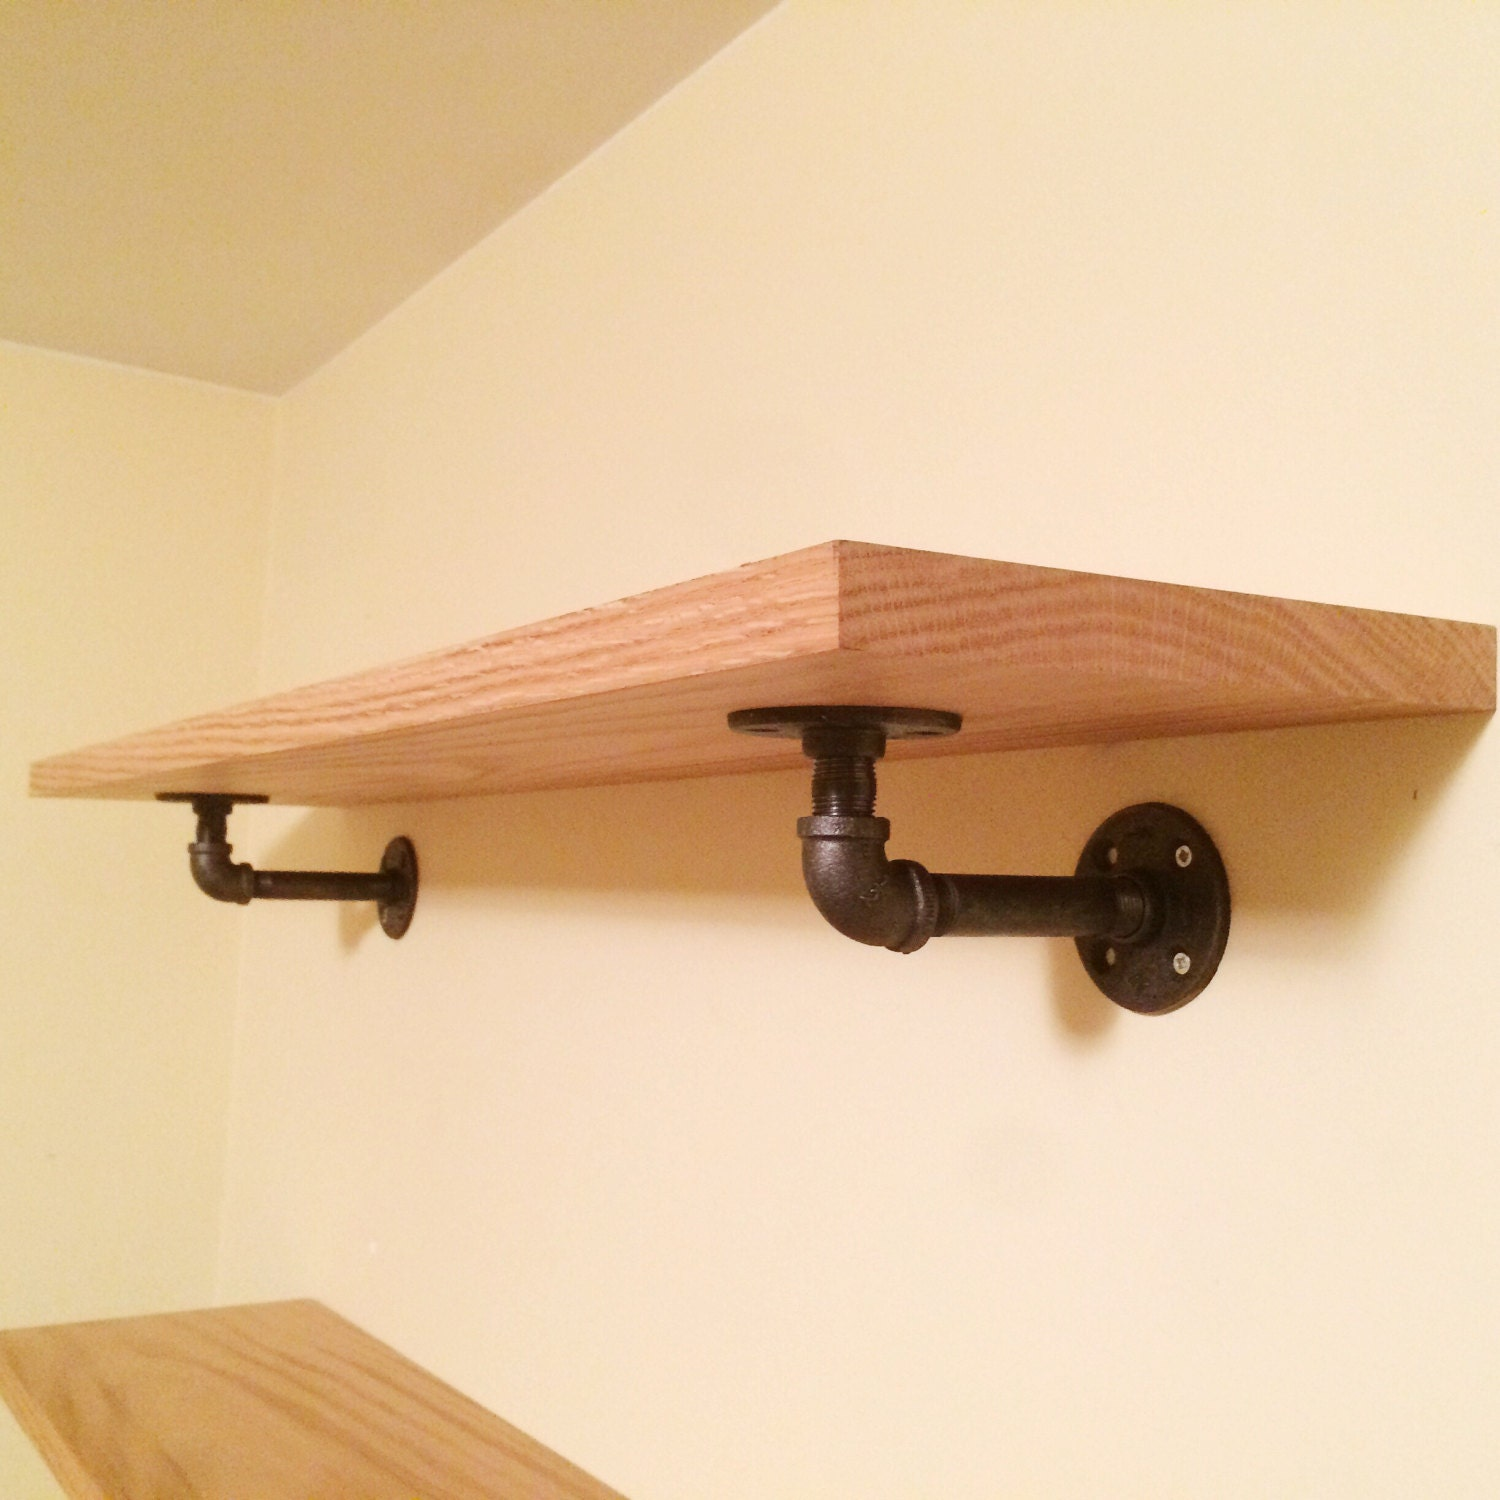 Superb img of Rustic Industrial Pipe Shelf Wood Shelf by DuffyIndustrialHome with #B16E1A color and 1500x1500 pixels